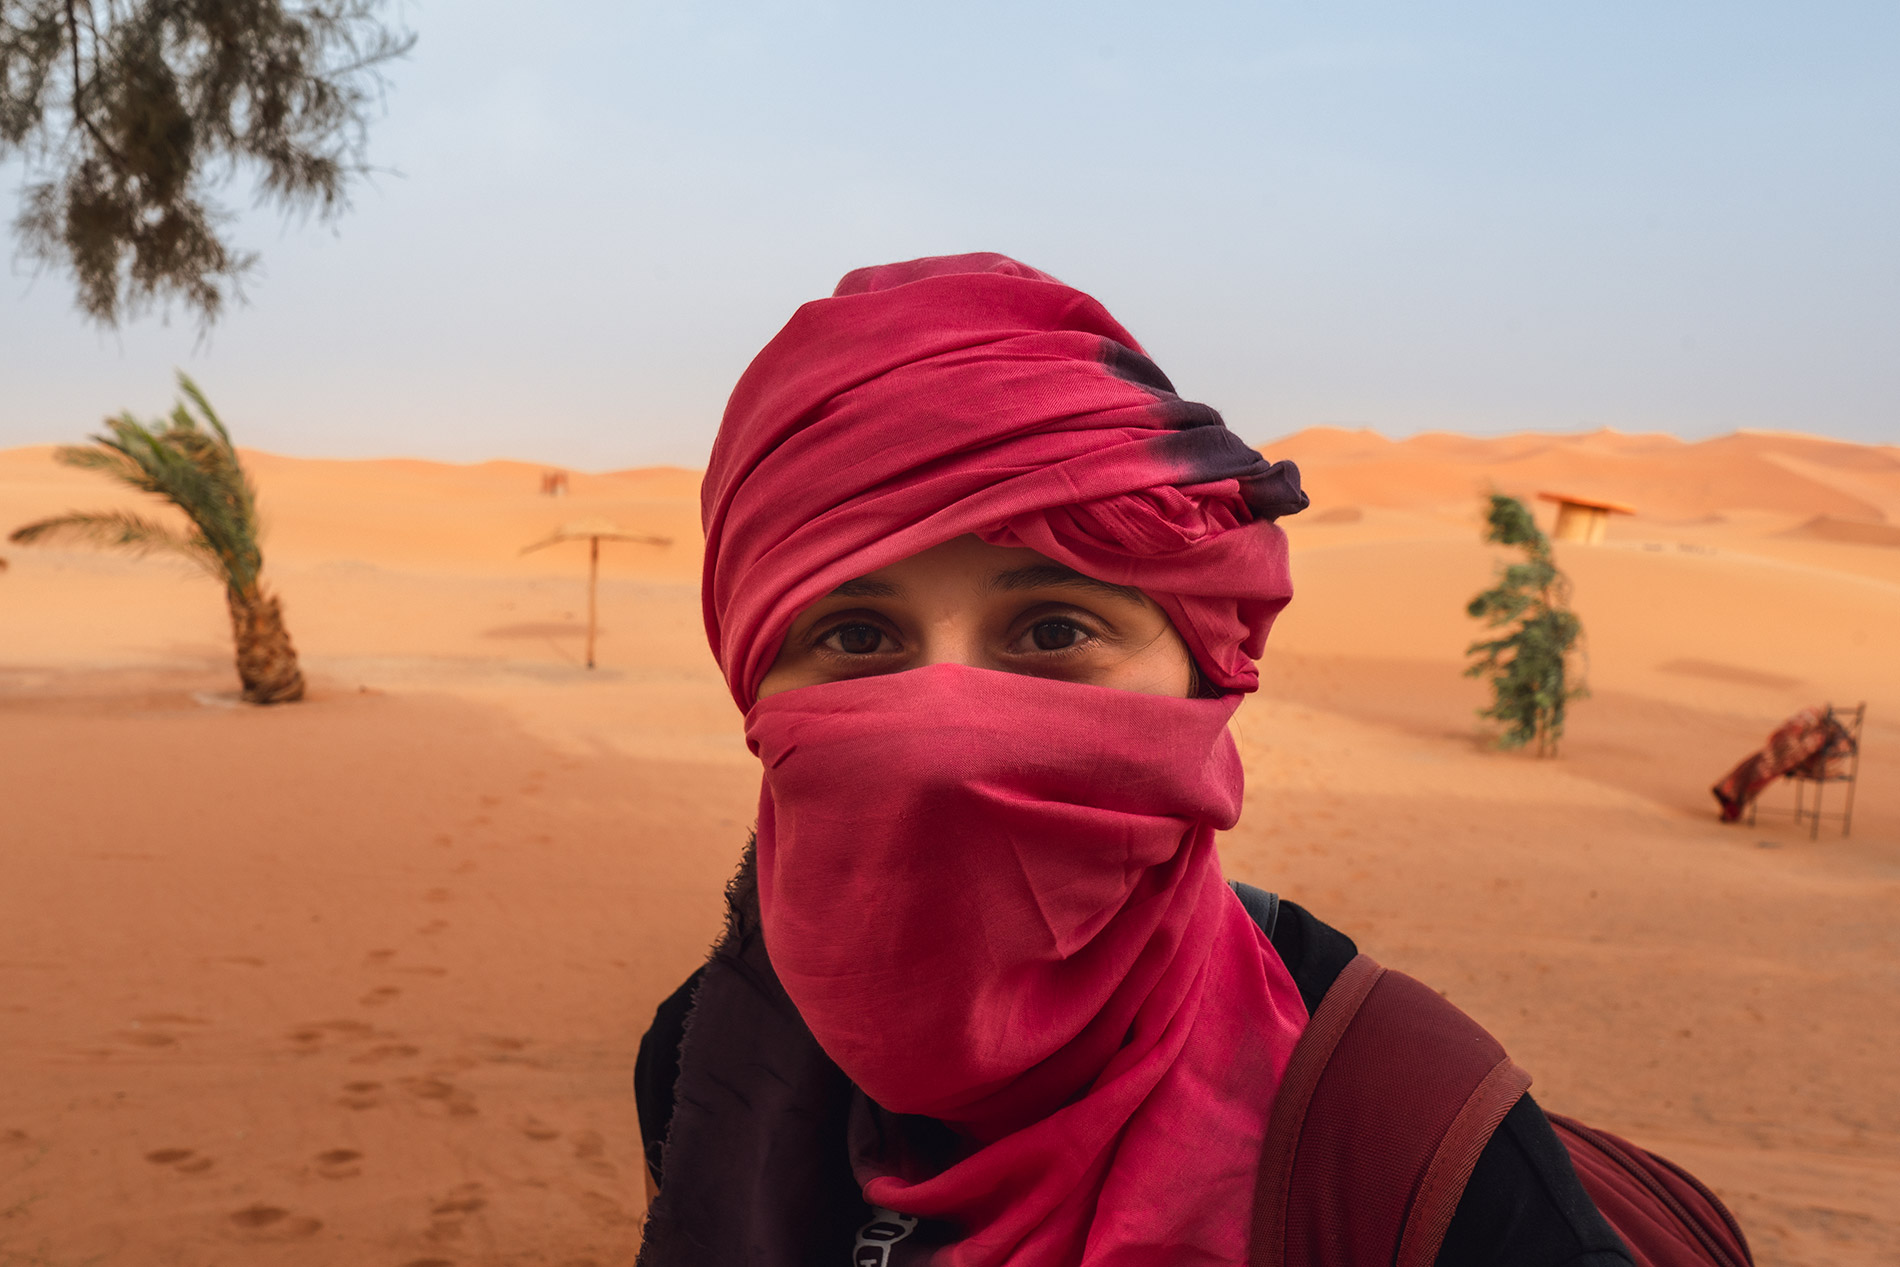 Maria with her head scarf in the Moroccan desert